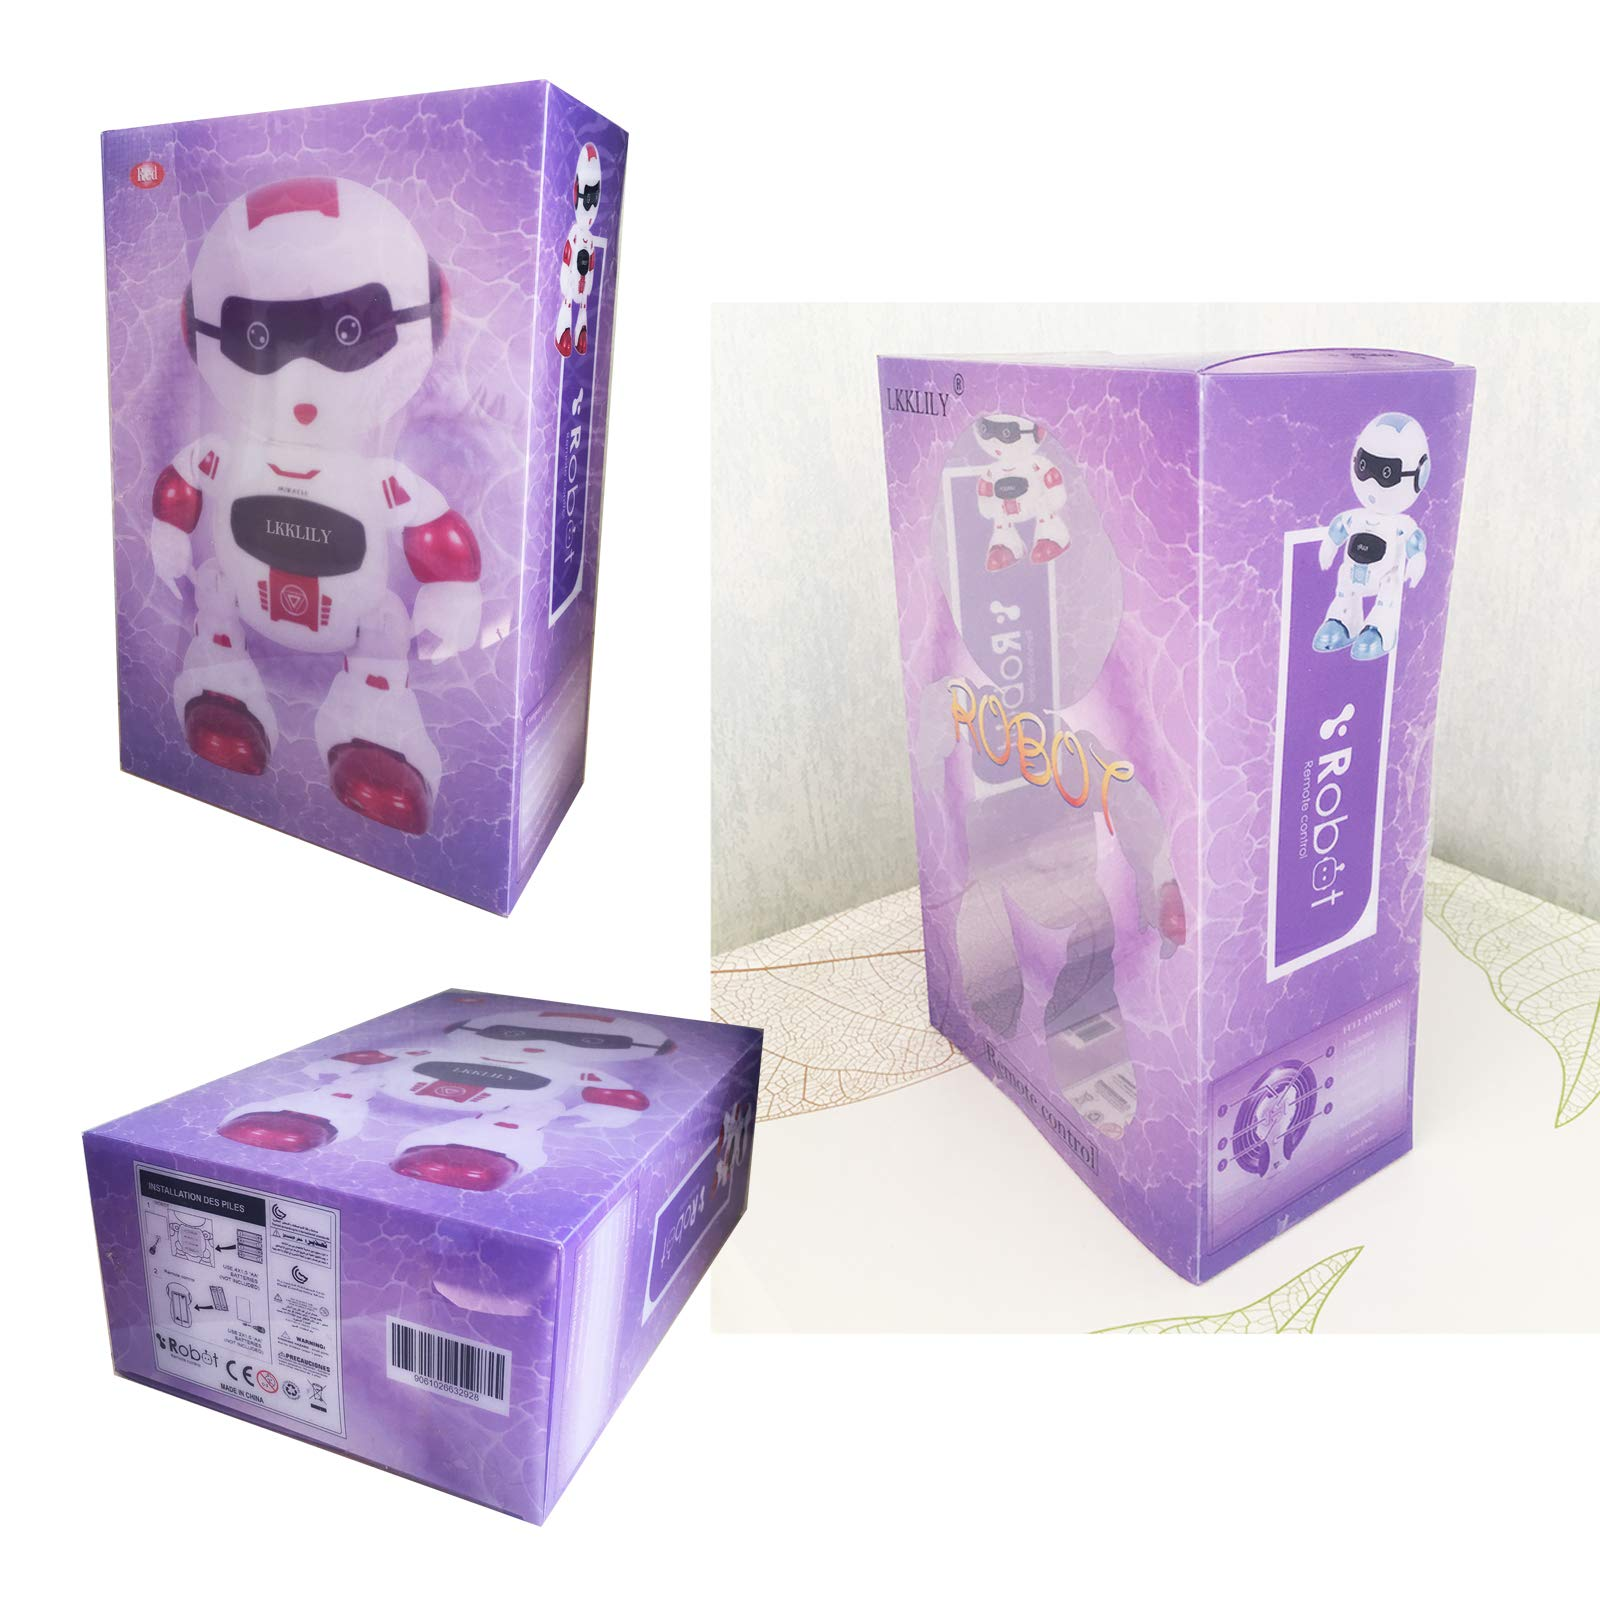 LKKLILY Remote Control Robot with Touch Interaction Music Dance and Lights Remote Toy for Children Kids and Kids Gifts (Red) by LKKLILY (Image #7)